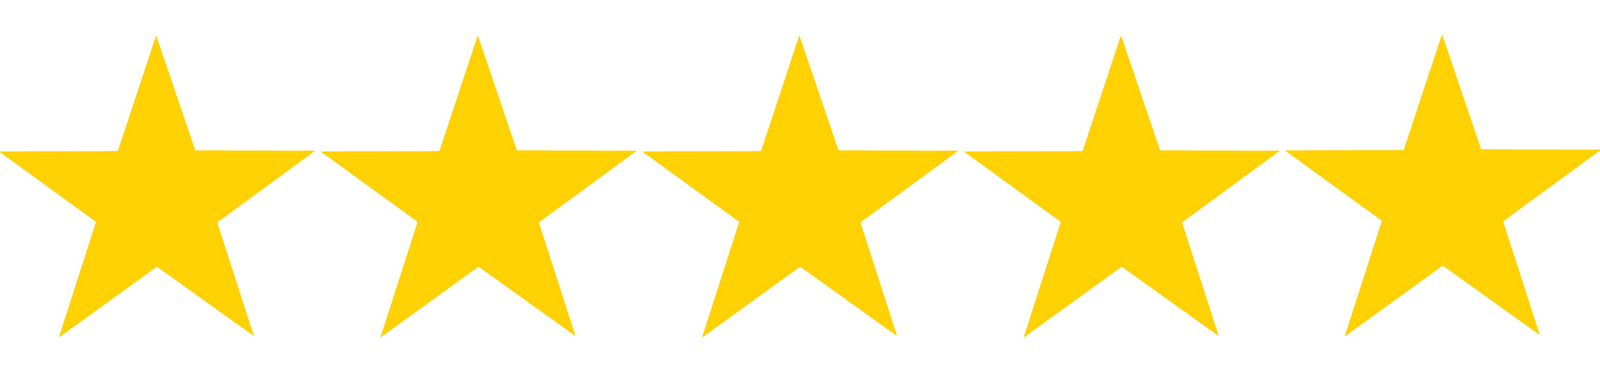 Row of stars clipart png black and white Line of stars clipart - ClipartFox png black and white